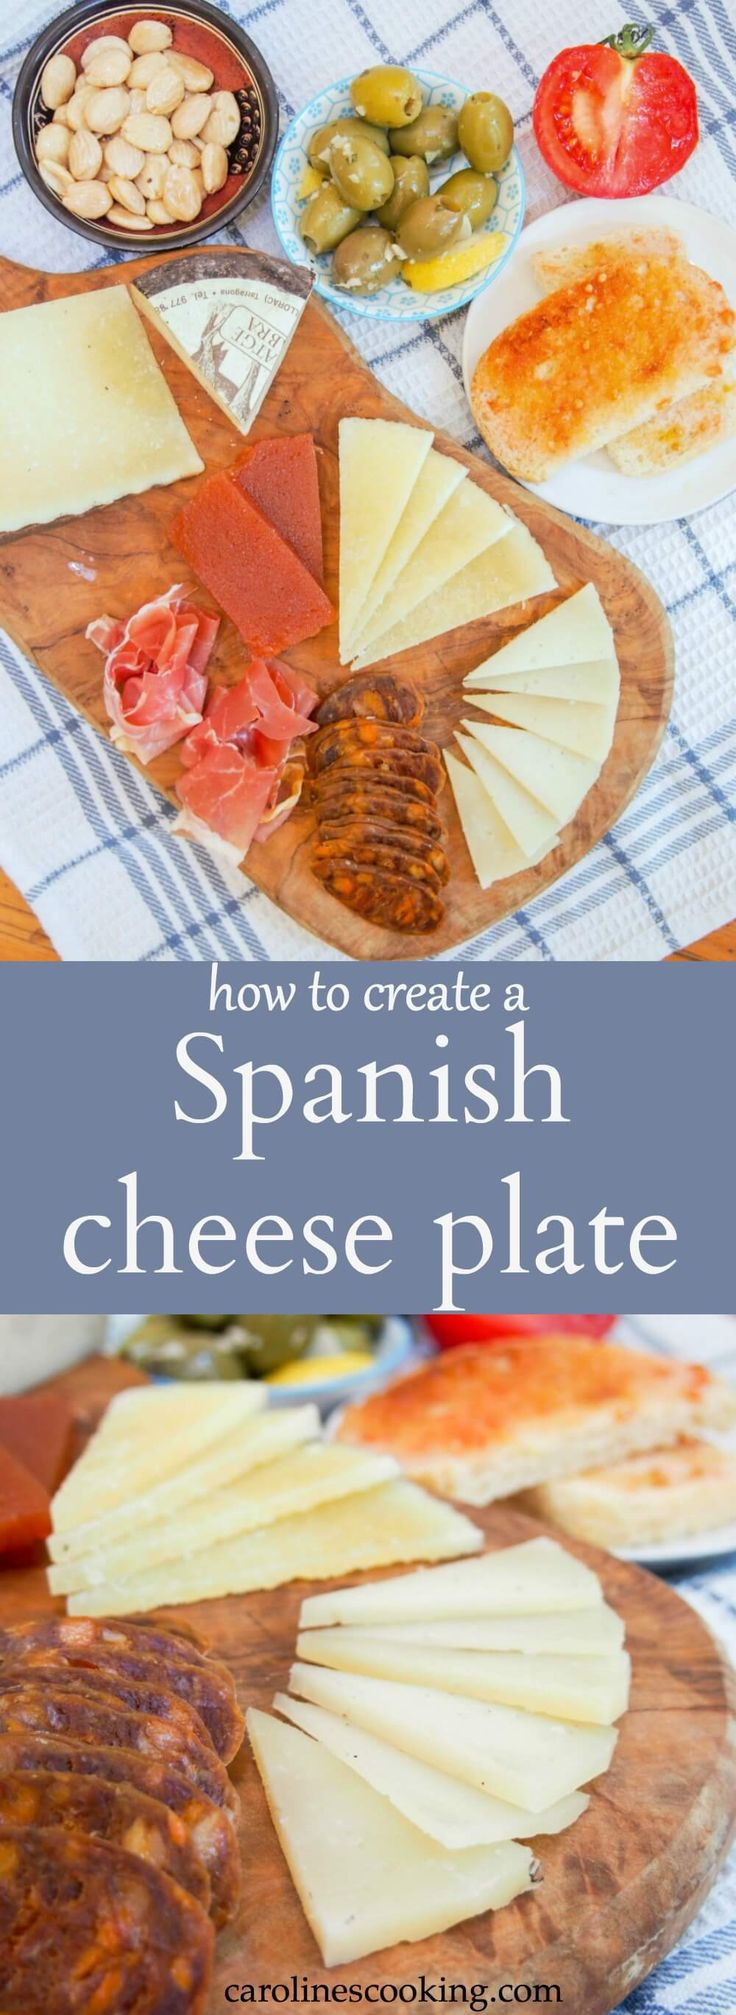 A Spanish cheese plate, with or without cured meats as well, is a great way to start a meal or for a light lunch. Get tips on what to include for your authentic taste of Spain.